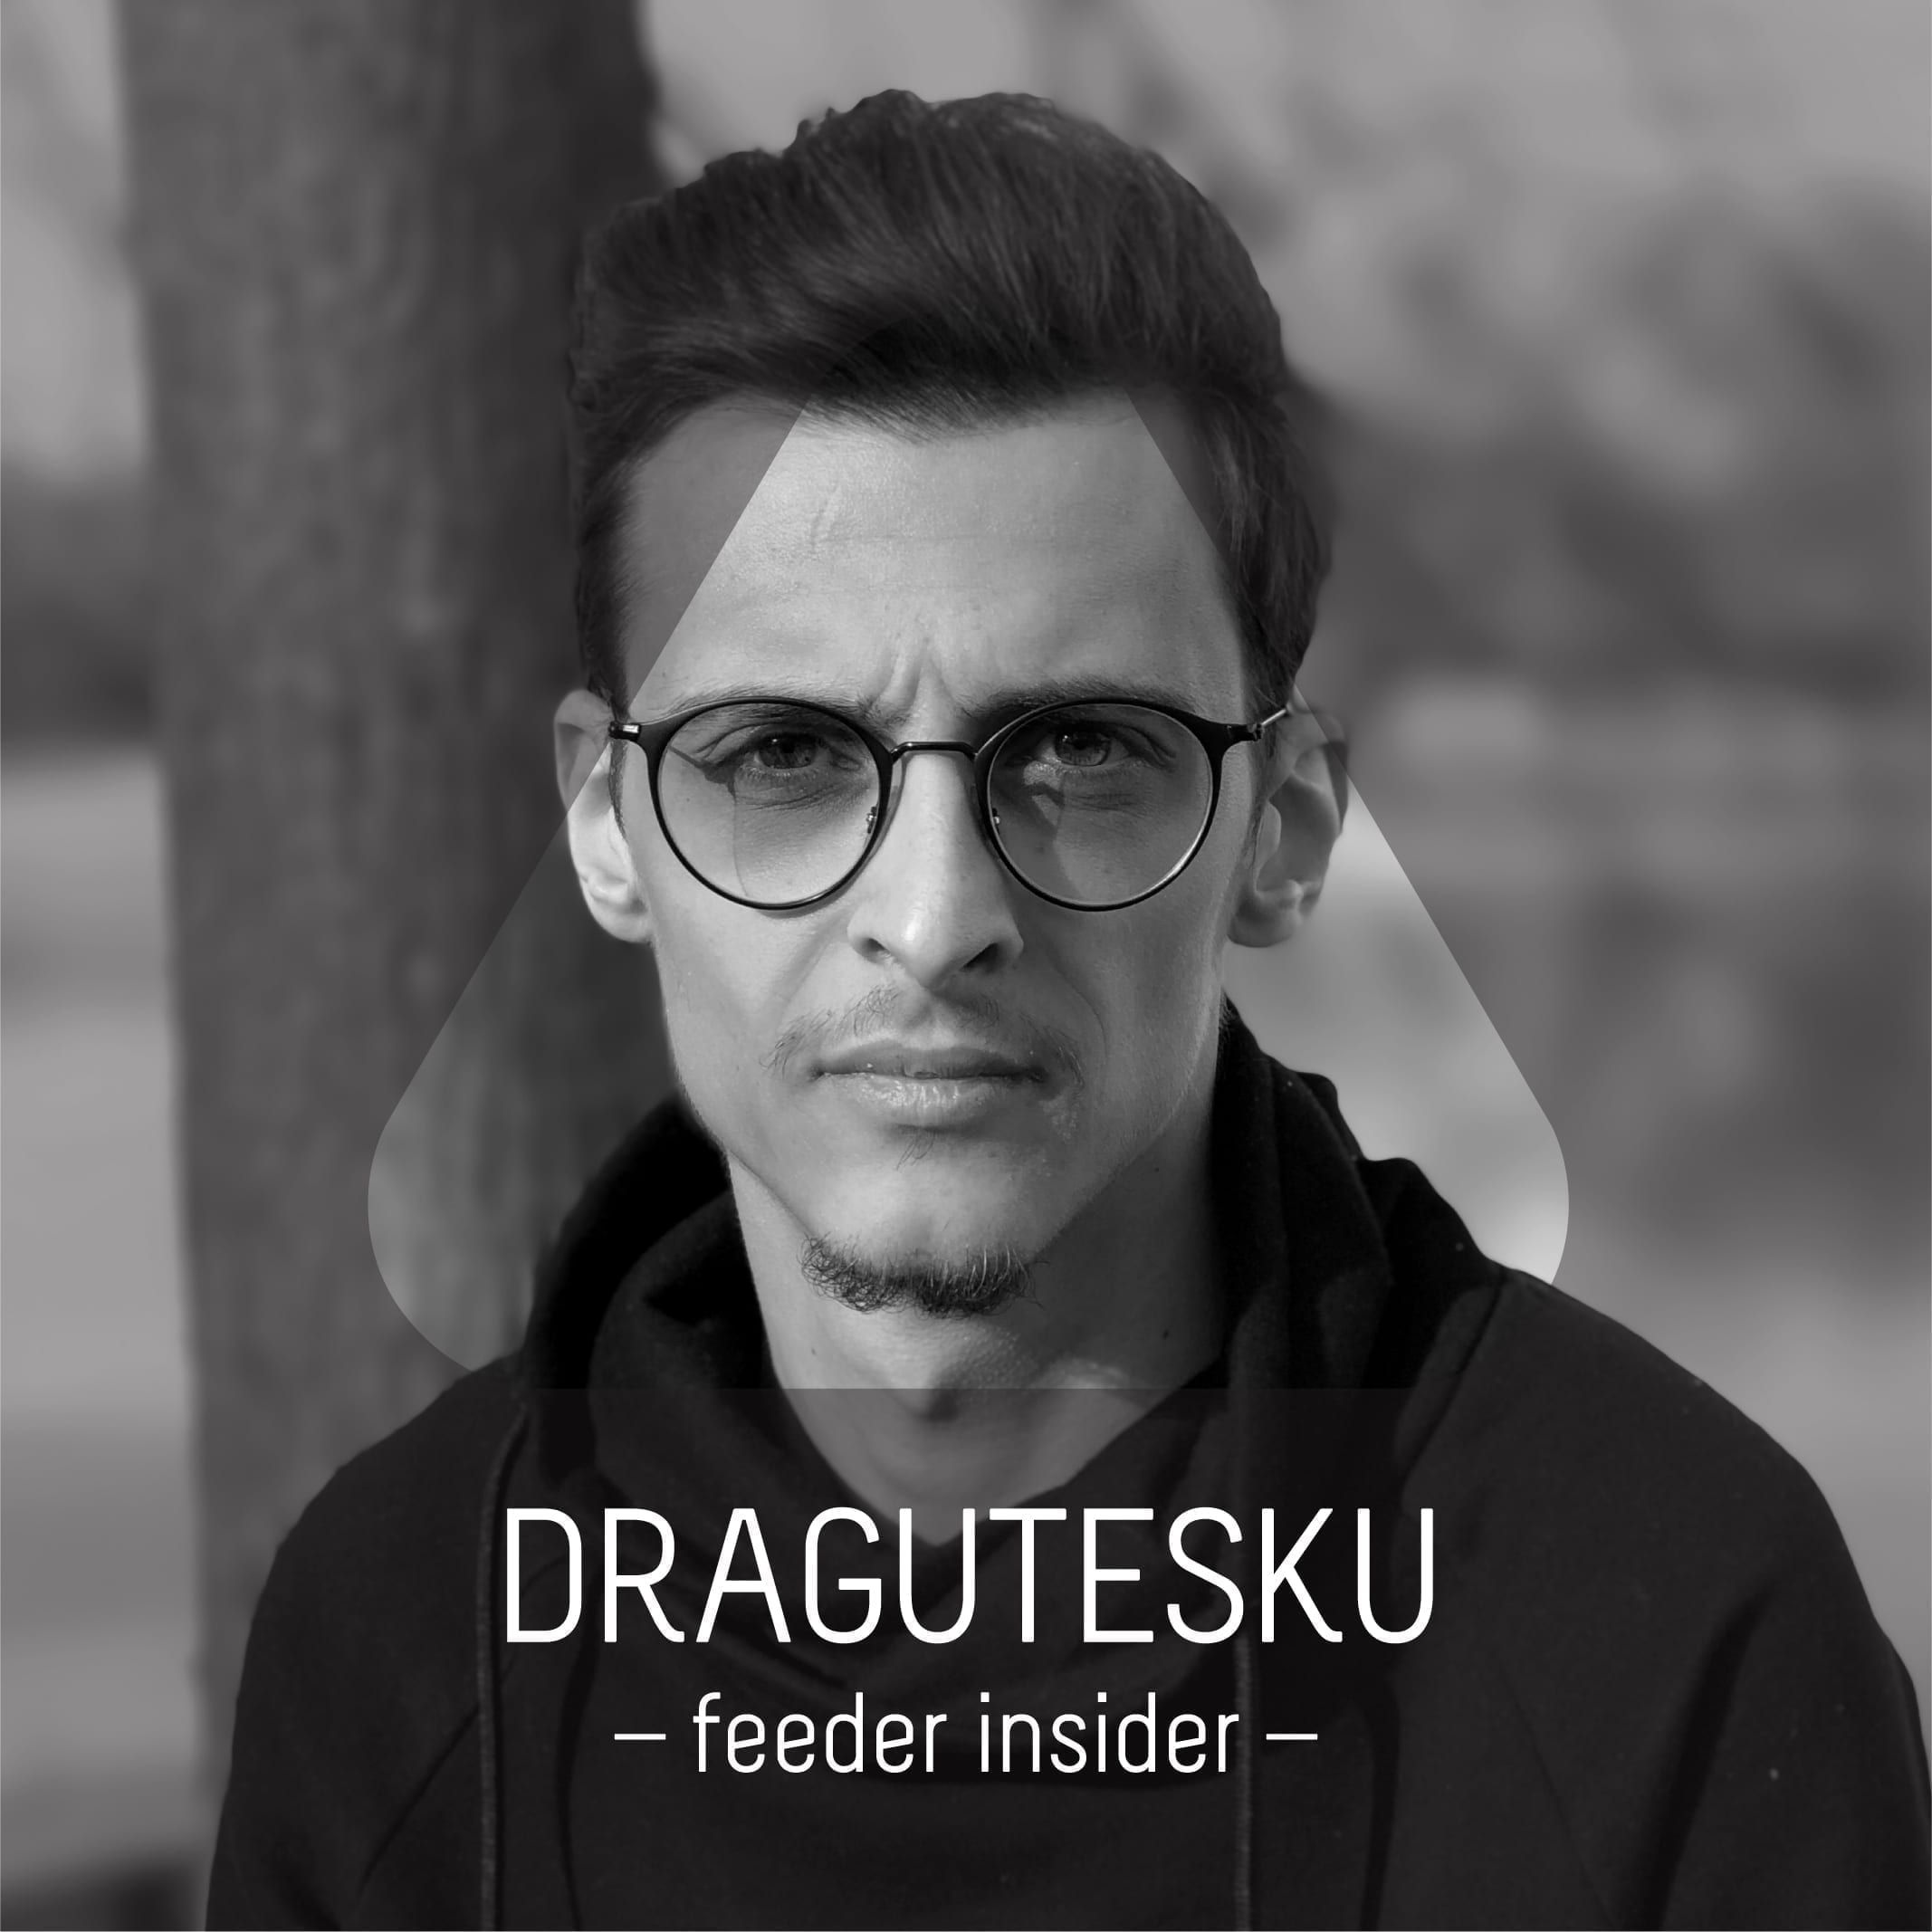 feeder insider with Dragutesku